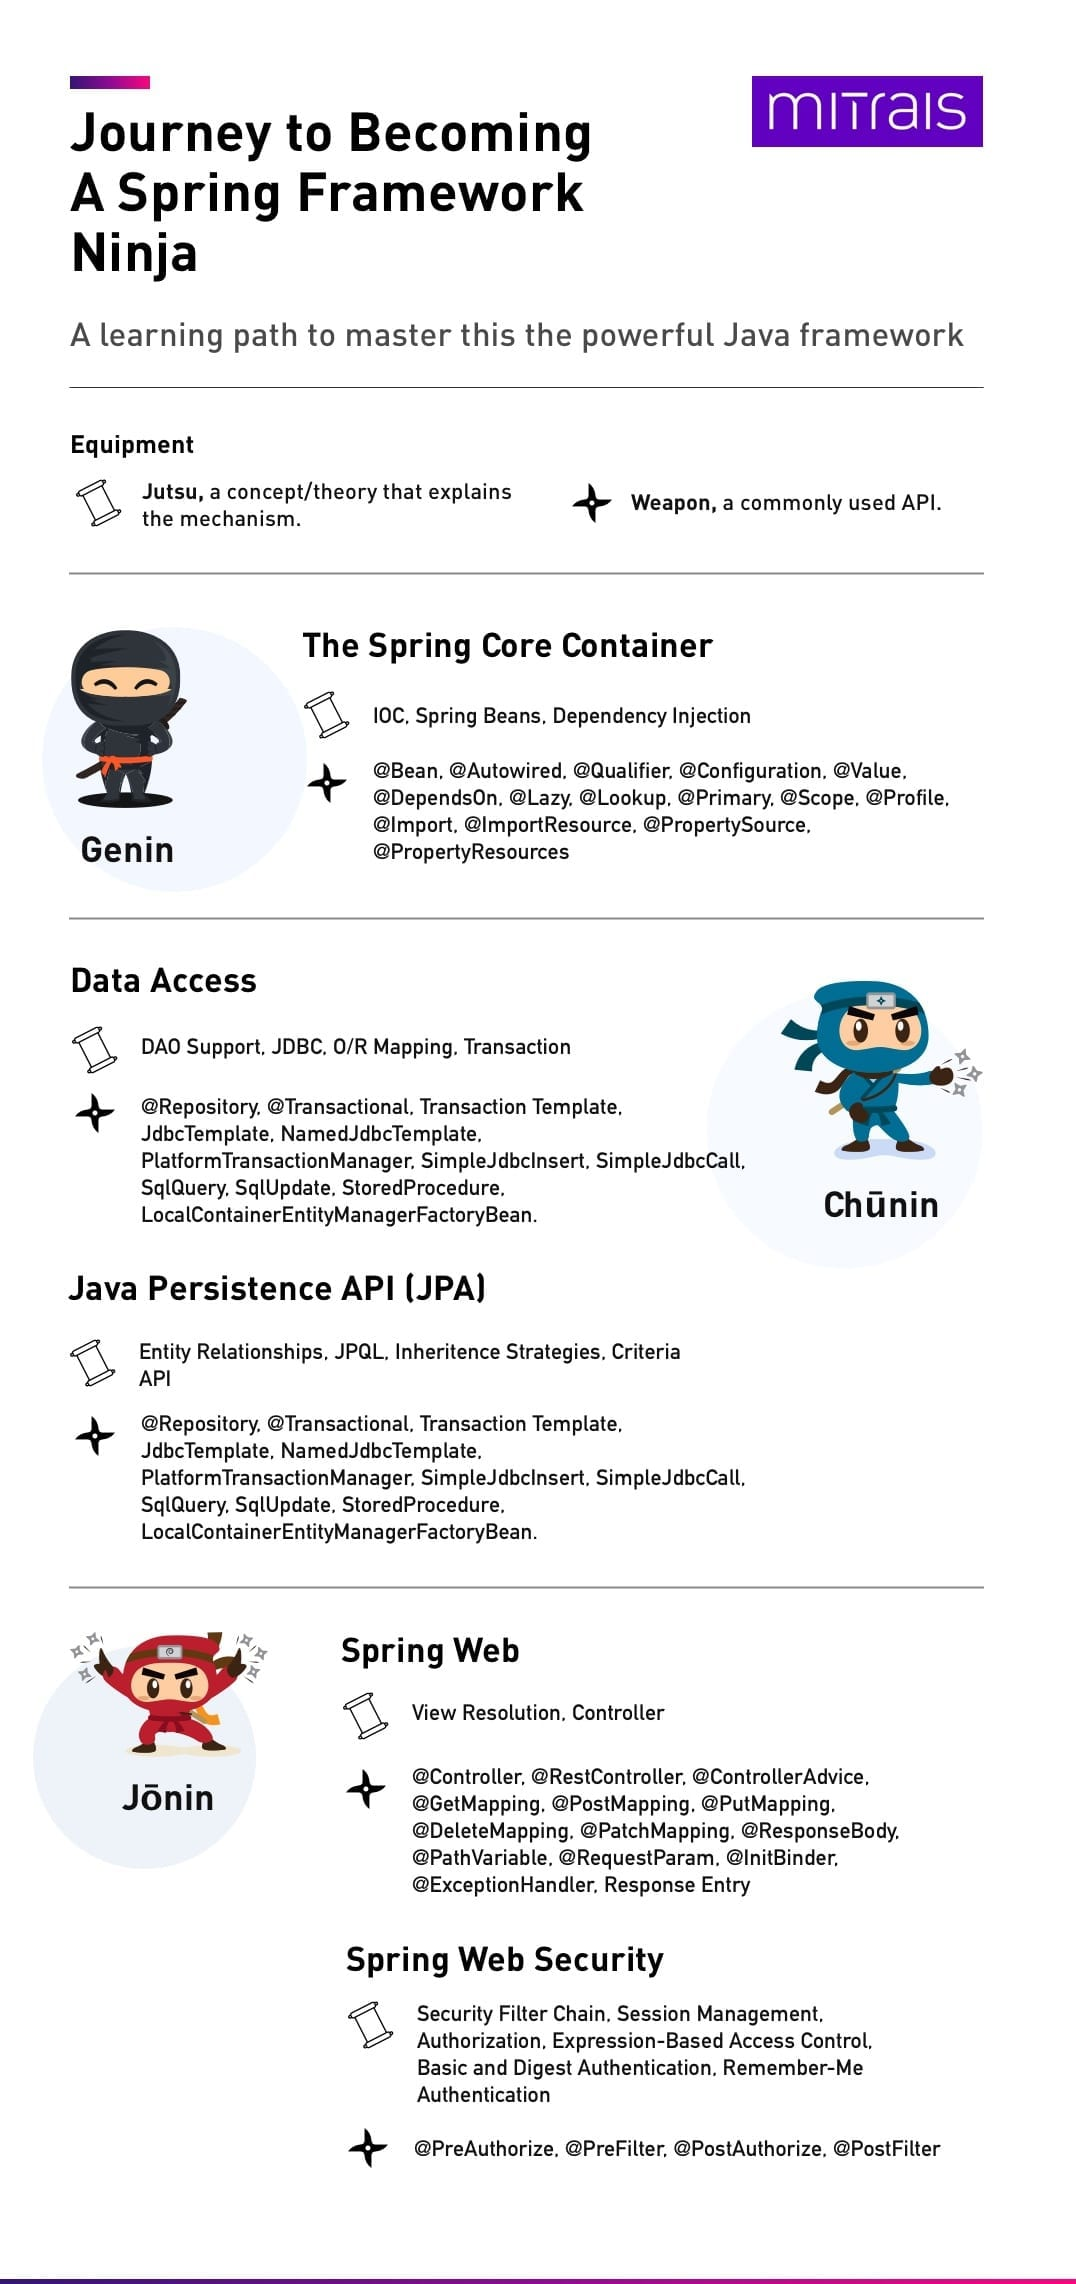 Journey to Becoming A Spring Framework Ninja infographic